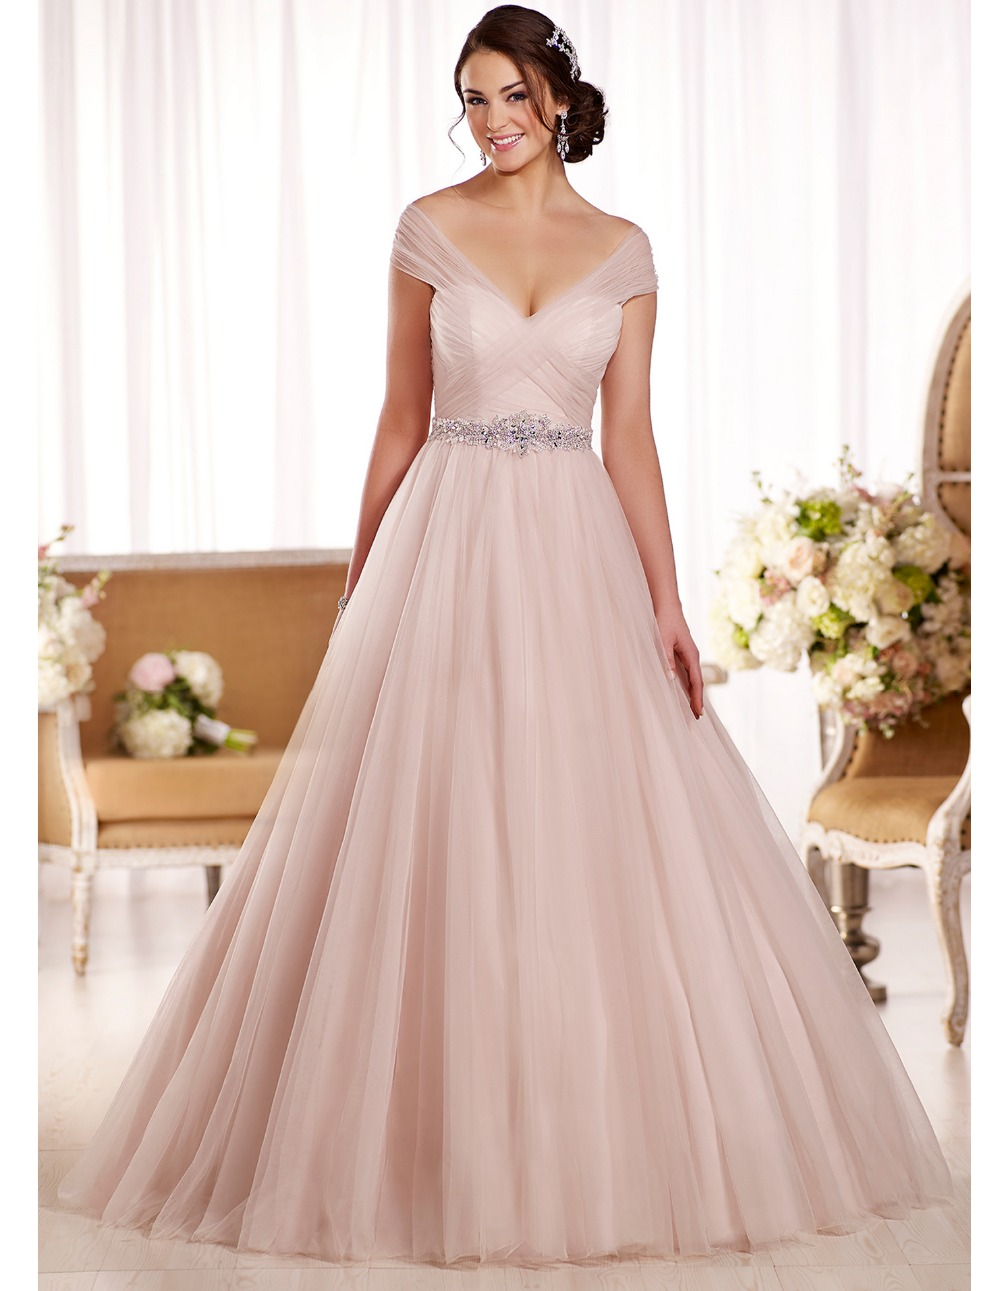 Blush Plus Size Wedding Dress - Gown And Dress Gallery